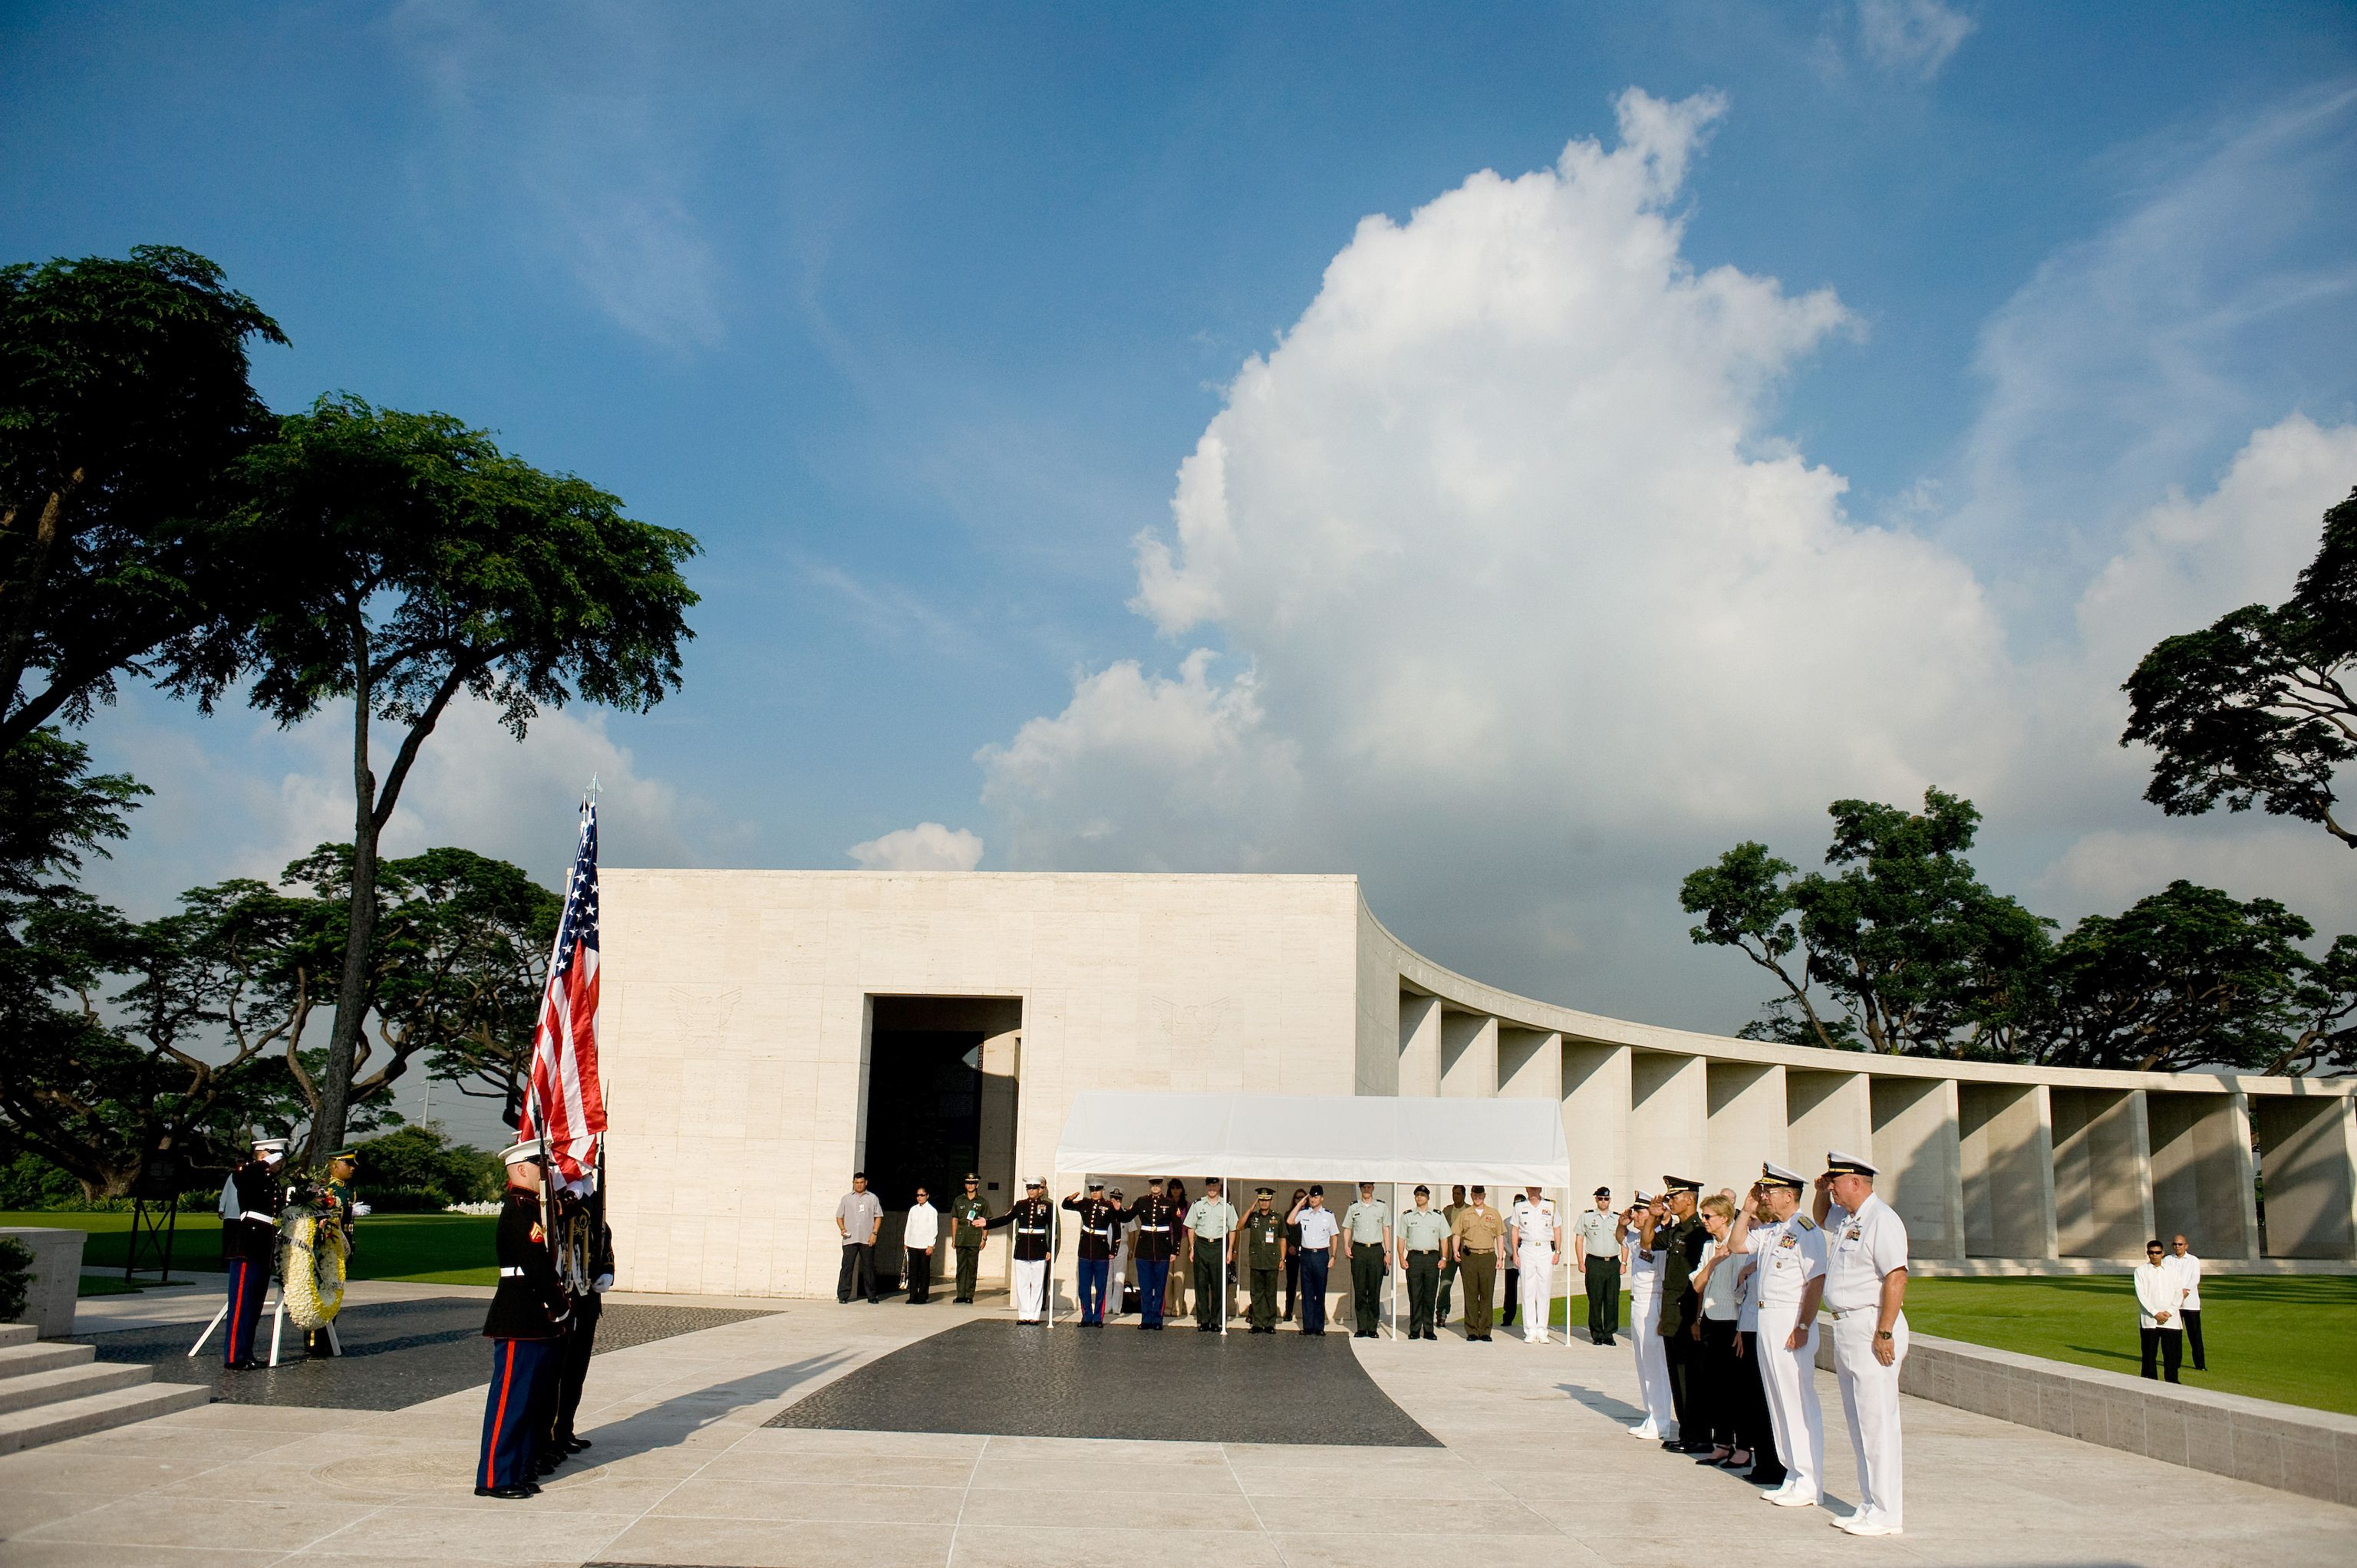 Memorial ceremony in honor of servicemembers buried at the Manila American Cemetery, Philippines.